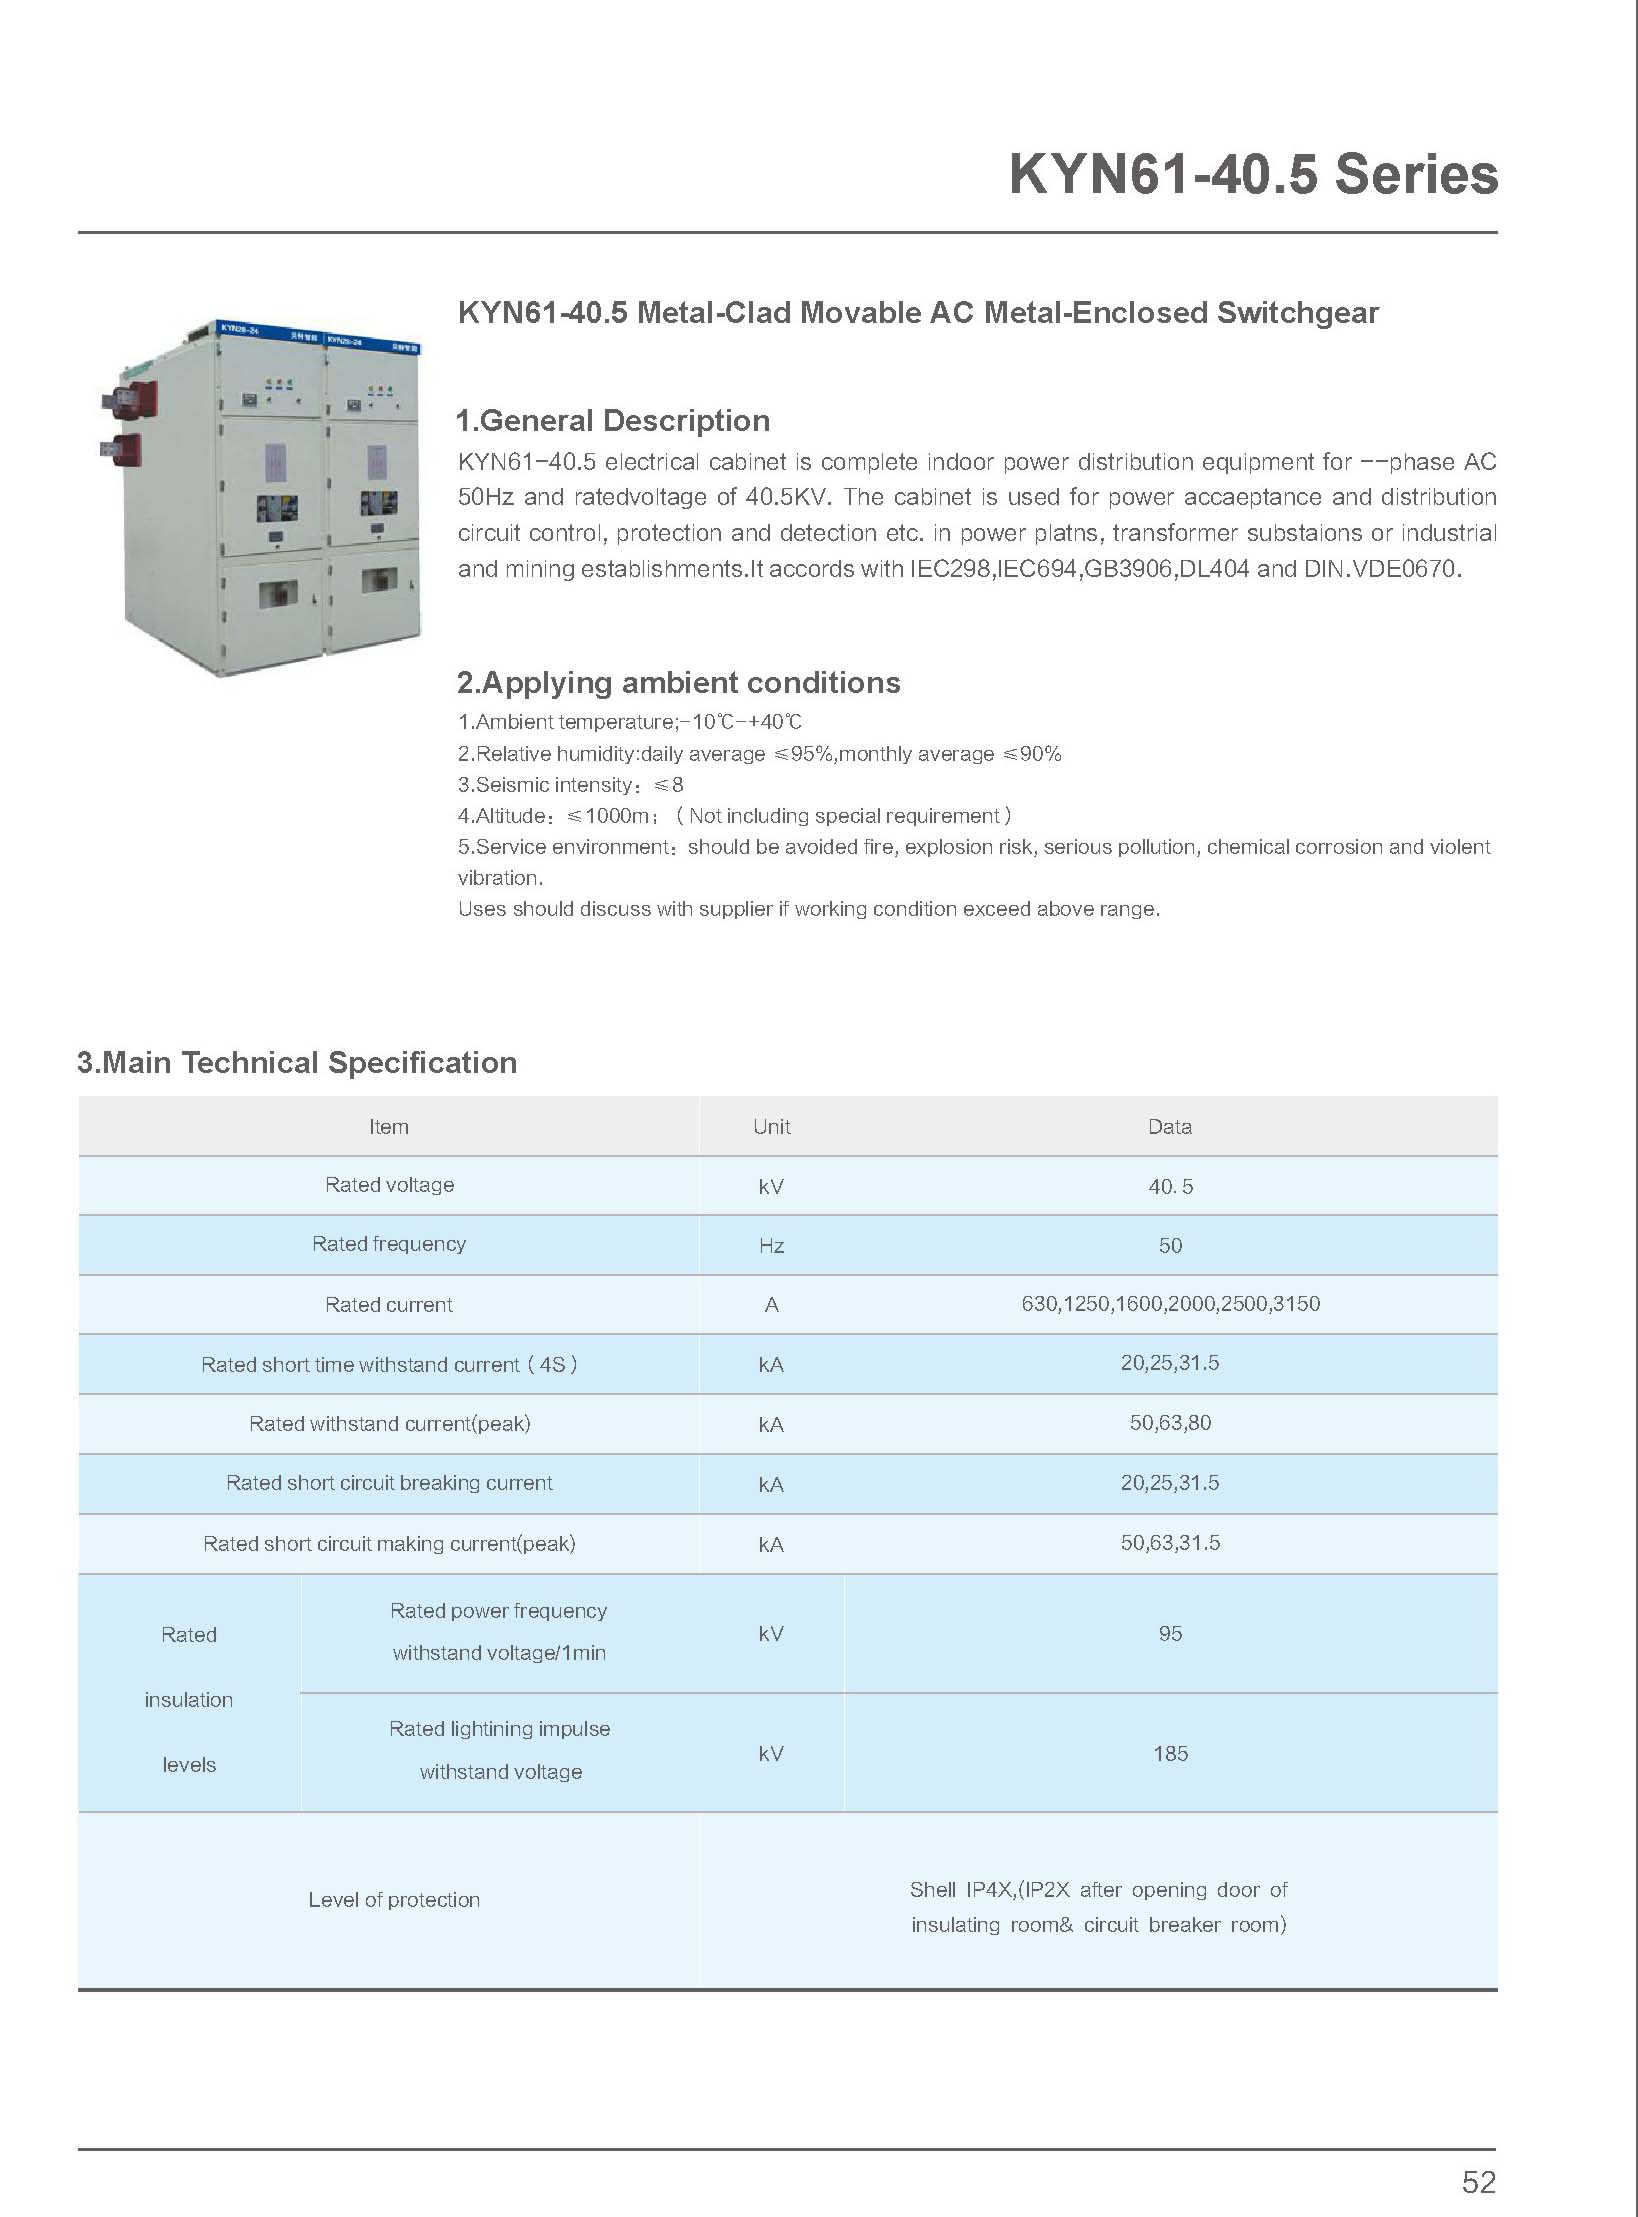 40.5kV Switchgear Technical Specification